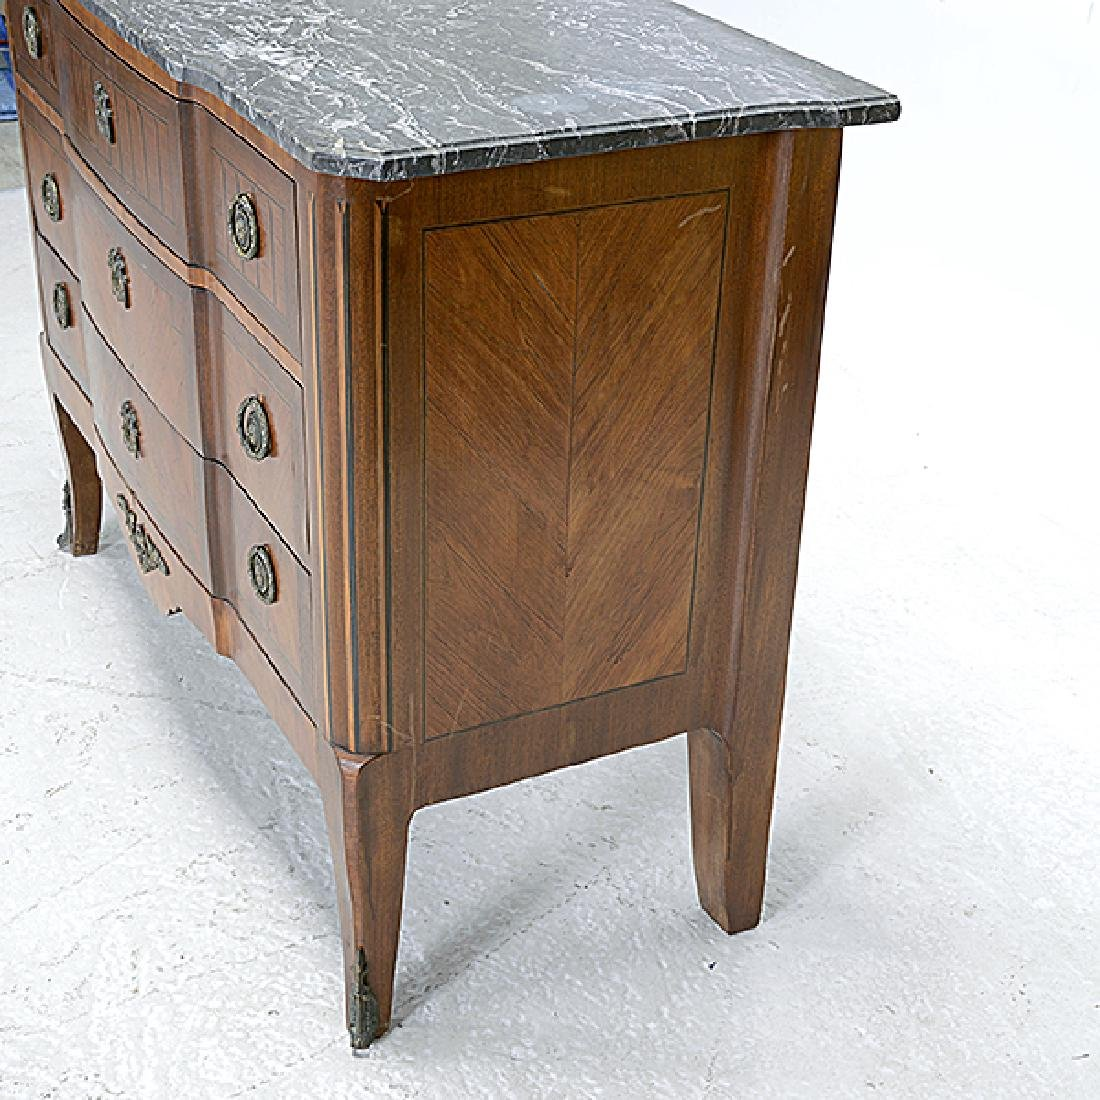 Louis XVI Style Marble Top Kingwood Marquetry Commode - 2